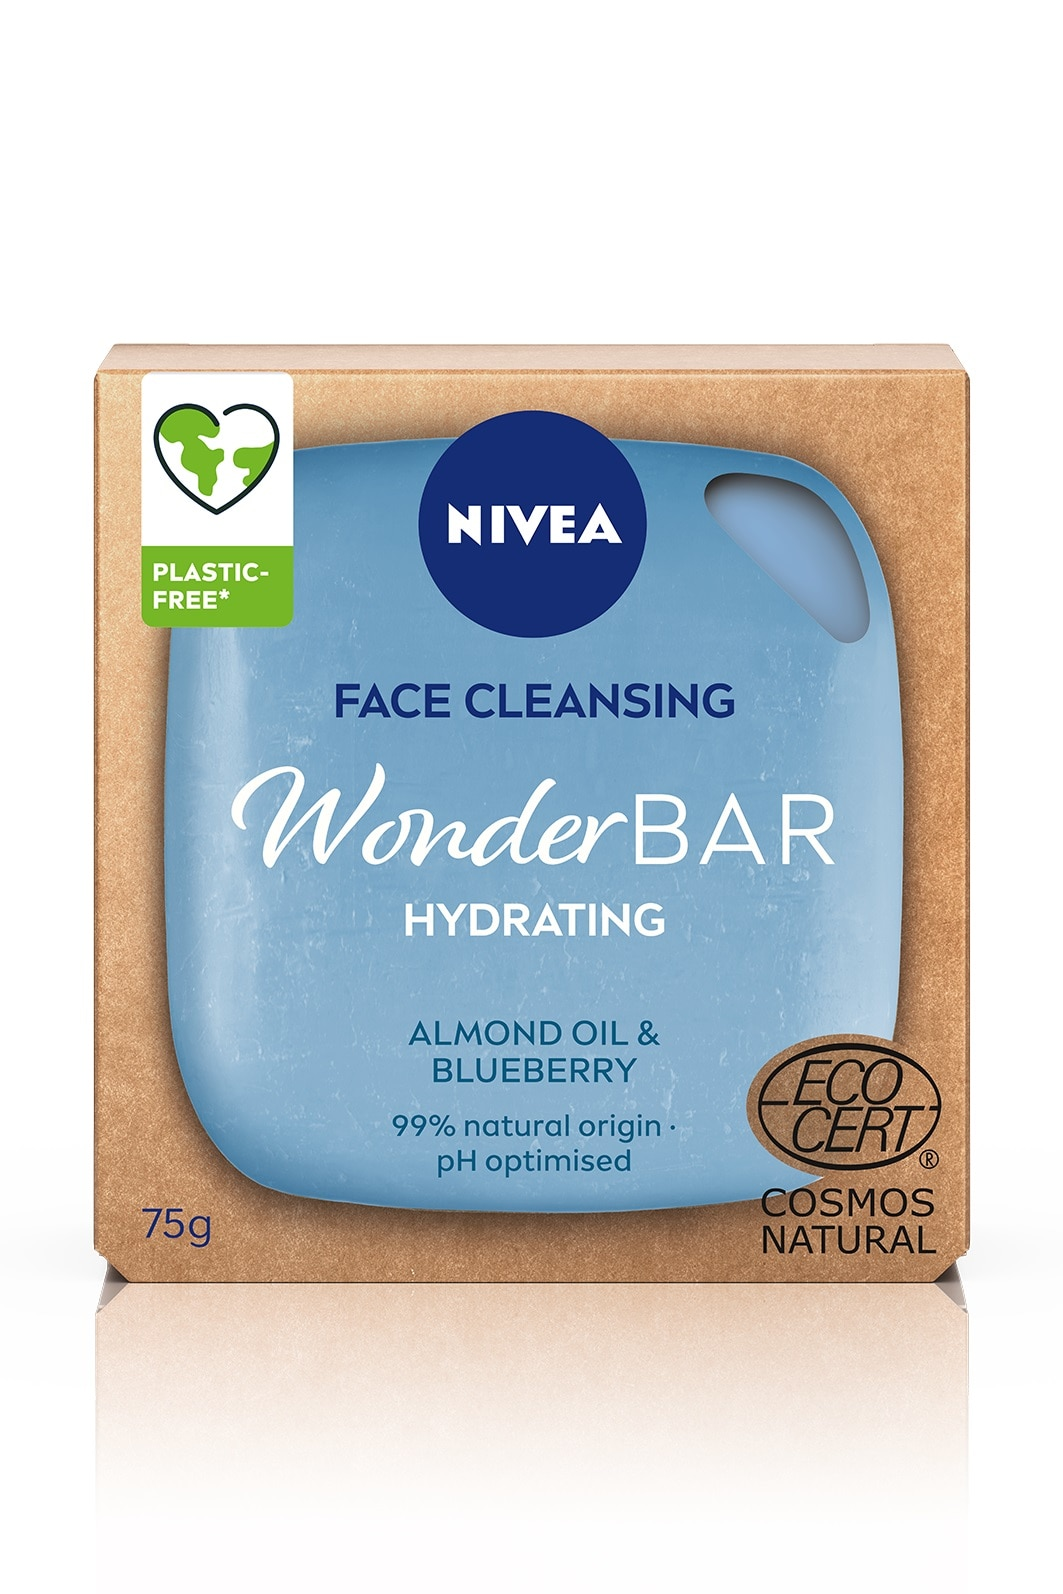 NIVEAFace Cleansing WonderBar Hydrating Almond Oil & Blueberry 75g,--